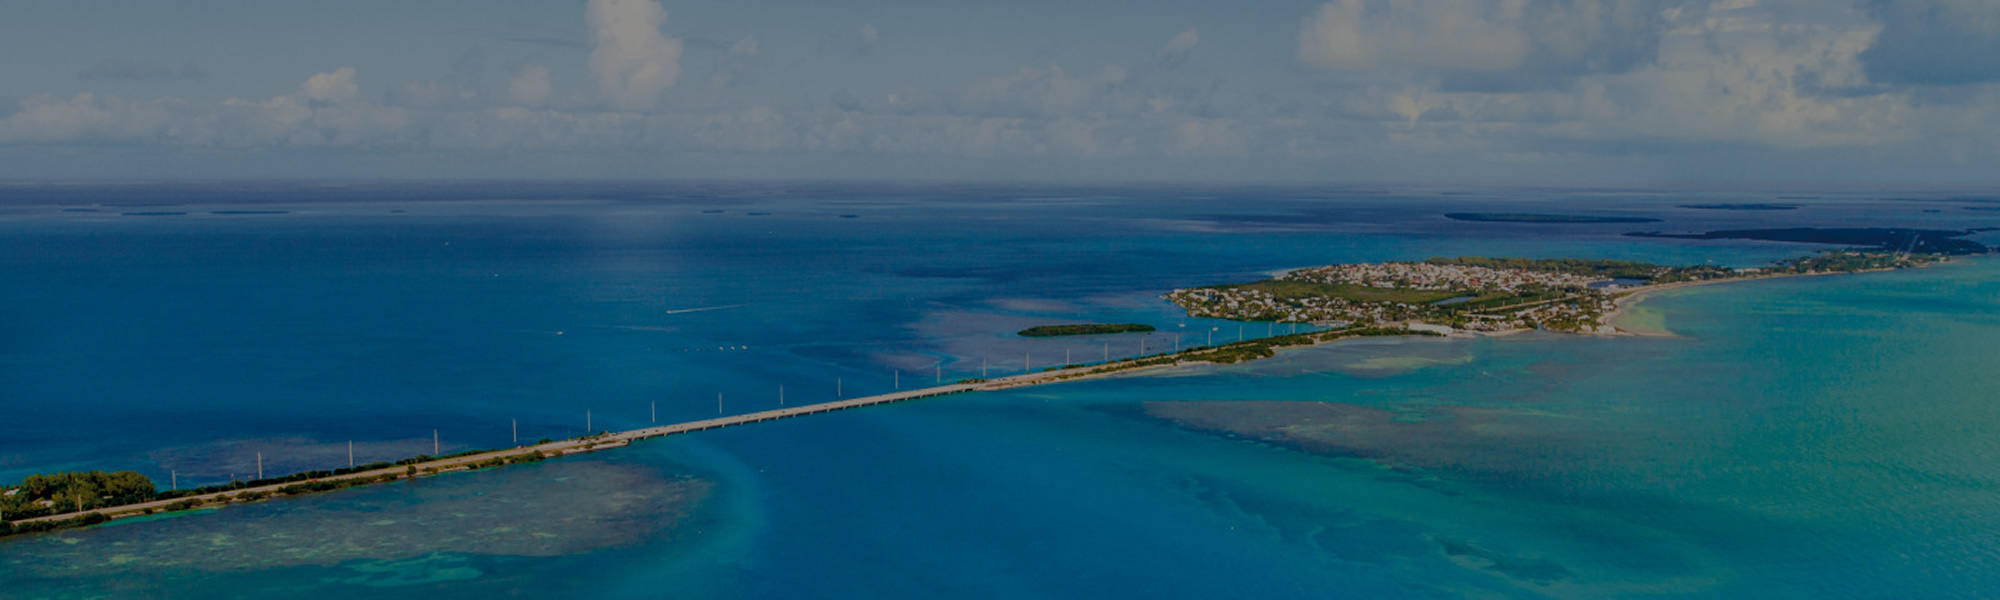 Best Seasons to go on a Fishing Adventure in the Florida Keys